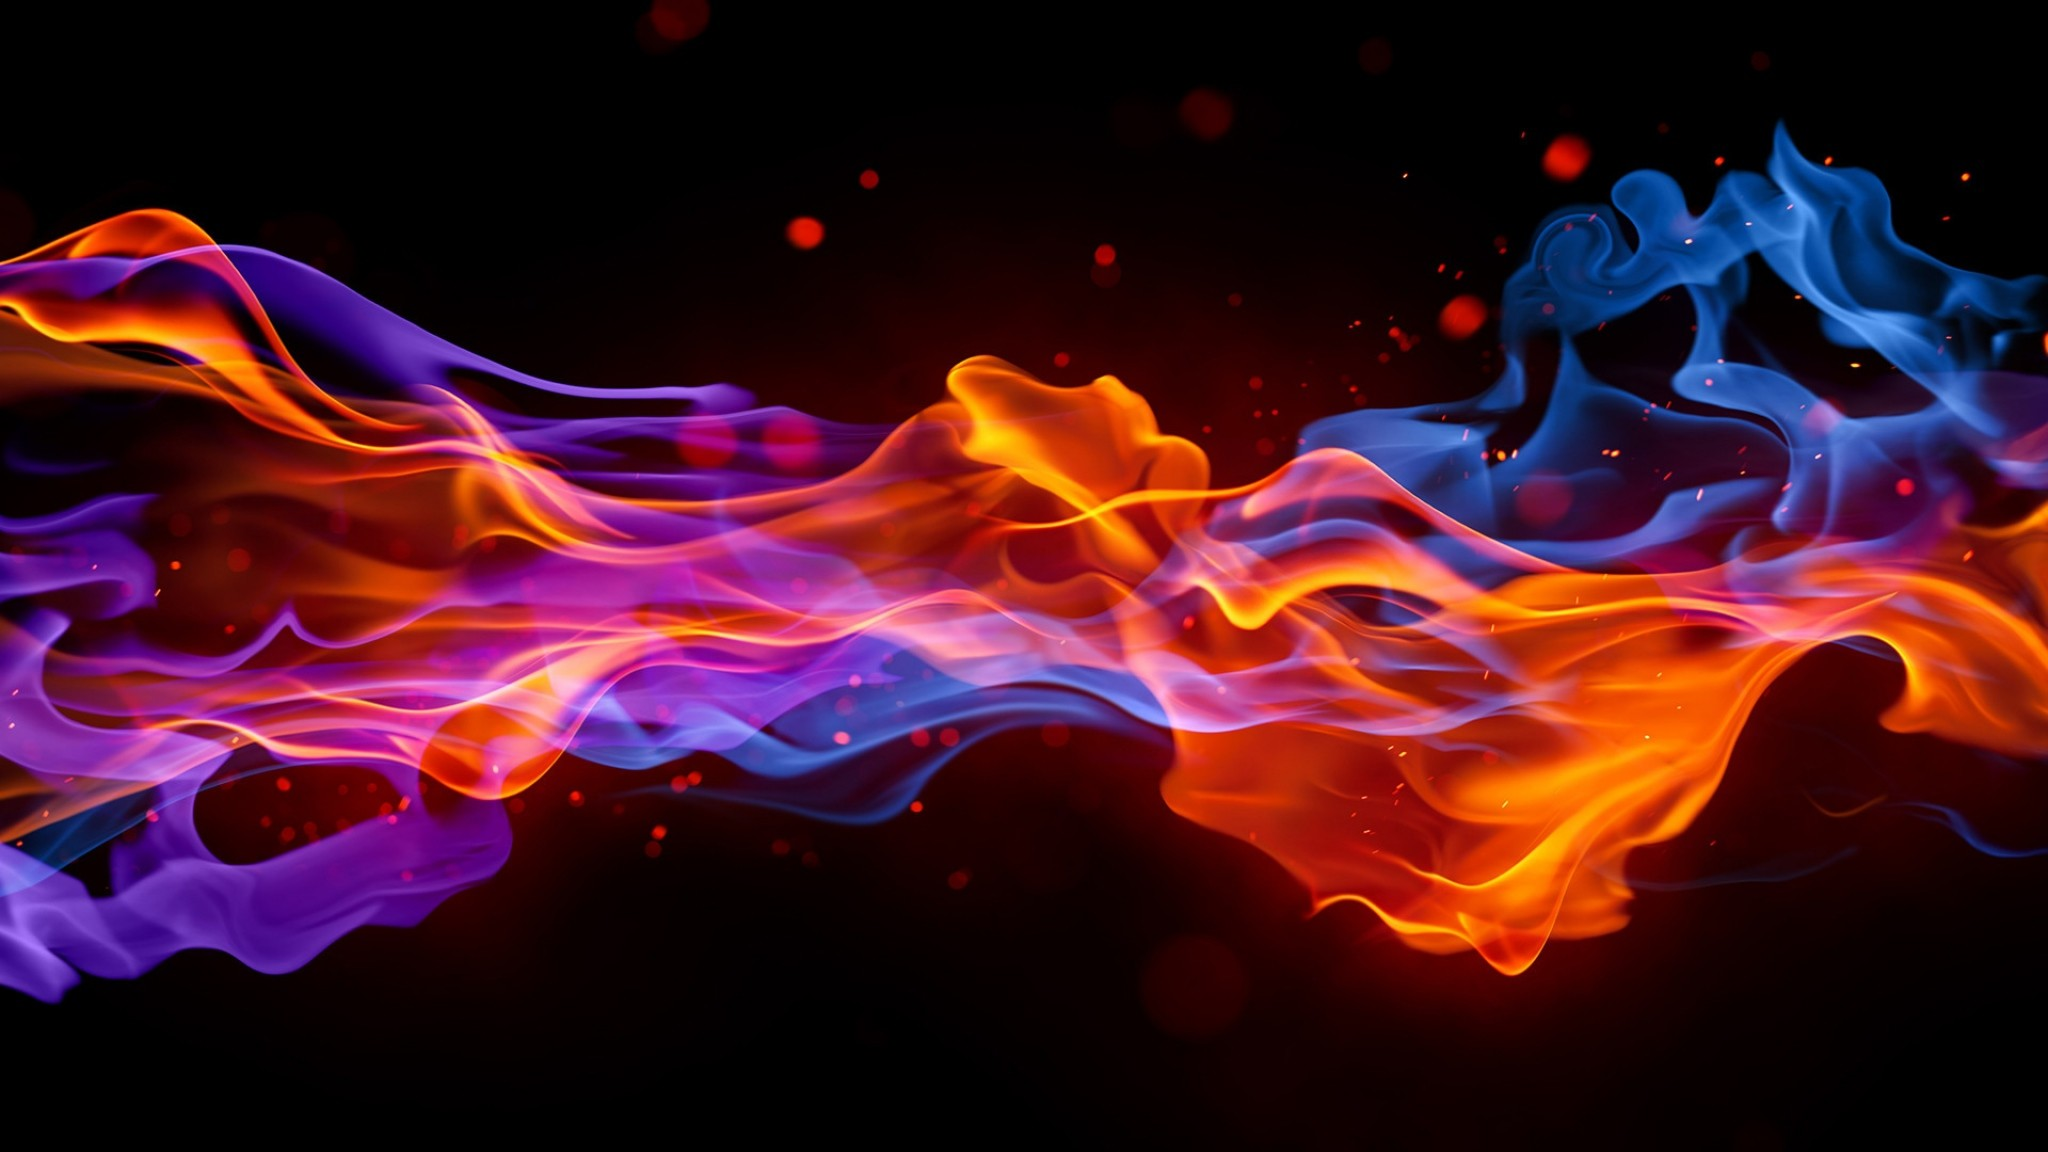 2048x1152 Download Wallpaper  Smoke, Fire, Bright, Colorful, Background .